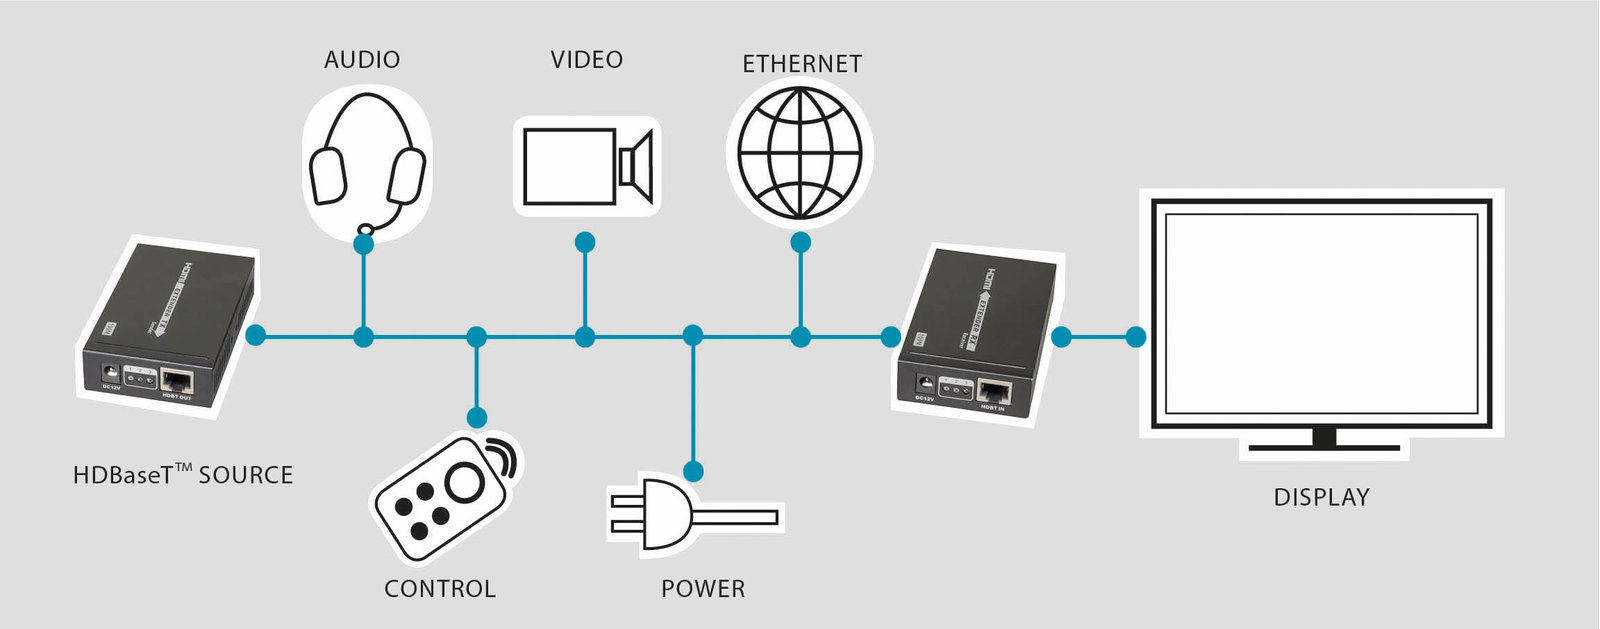 HDBaseT™ Application